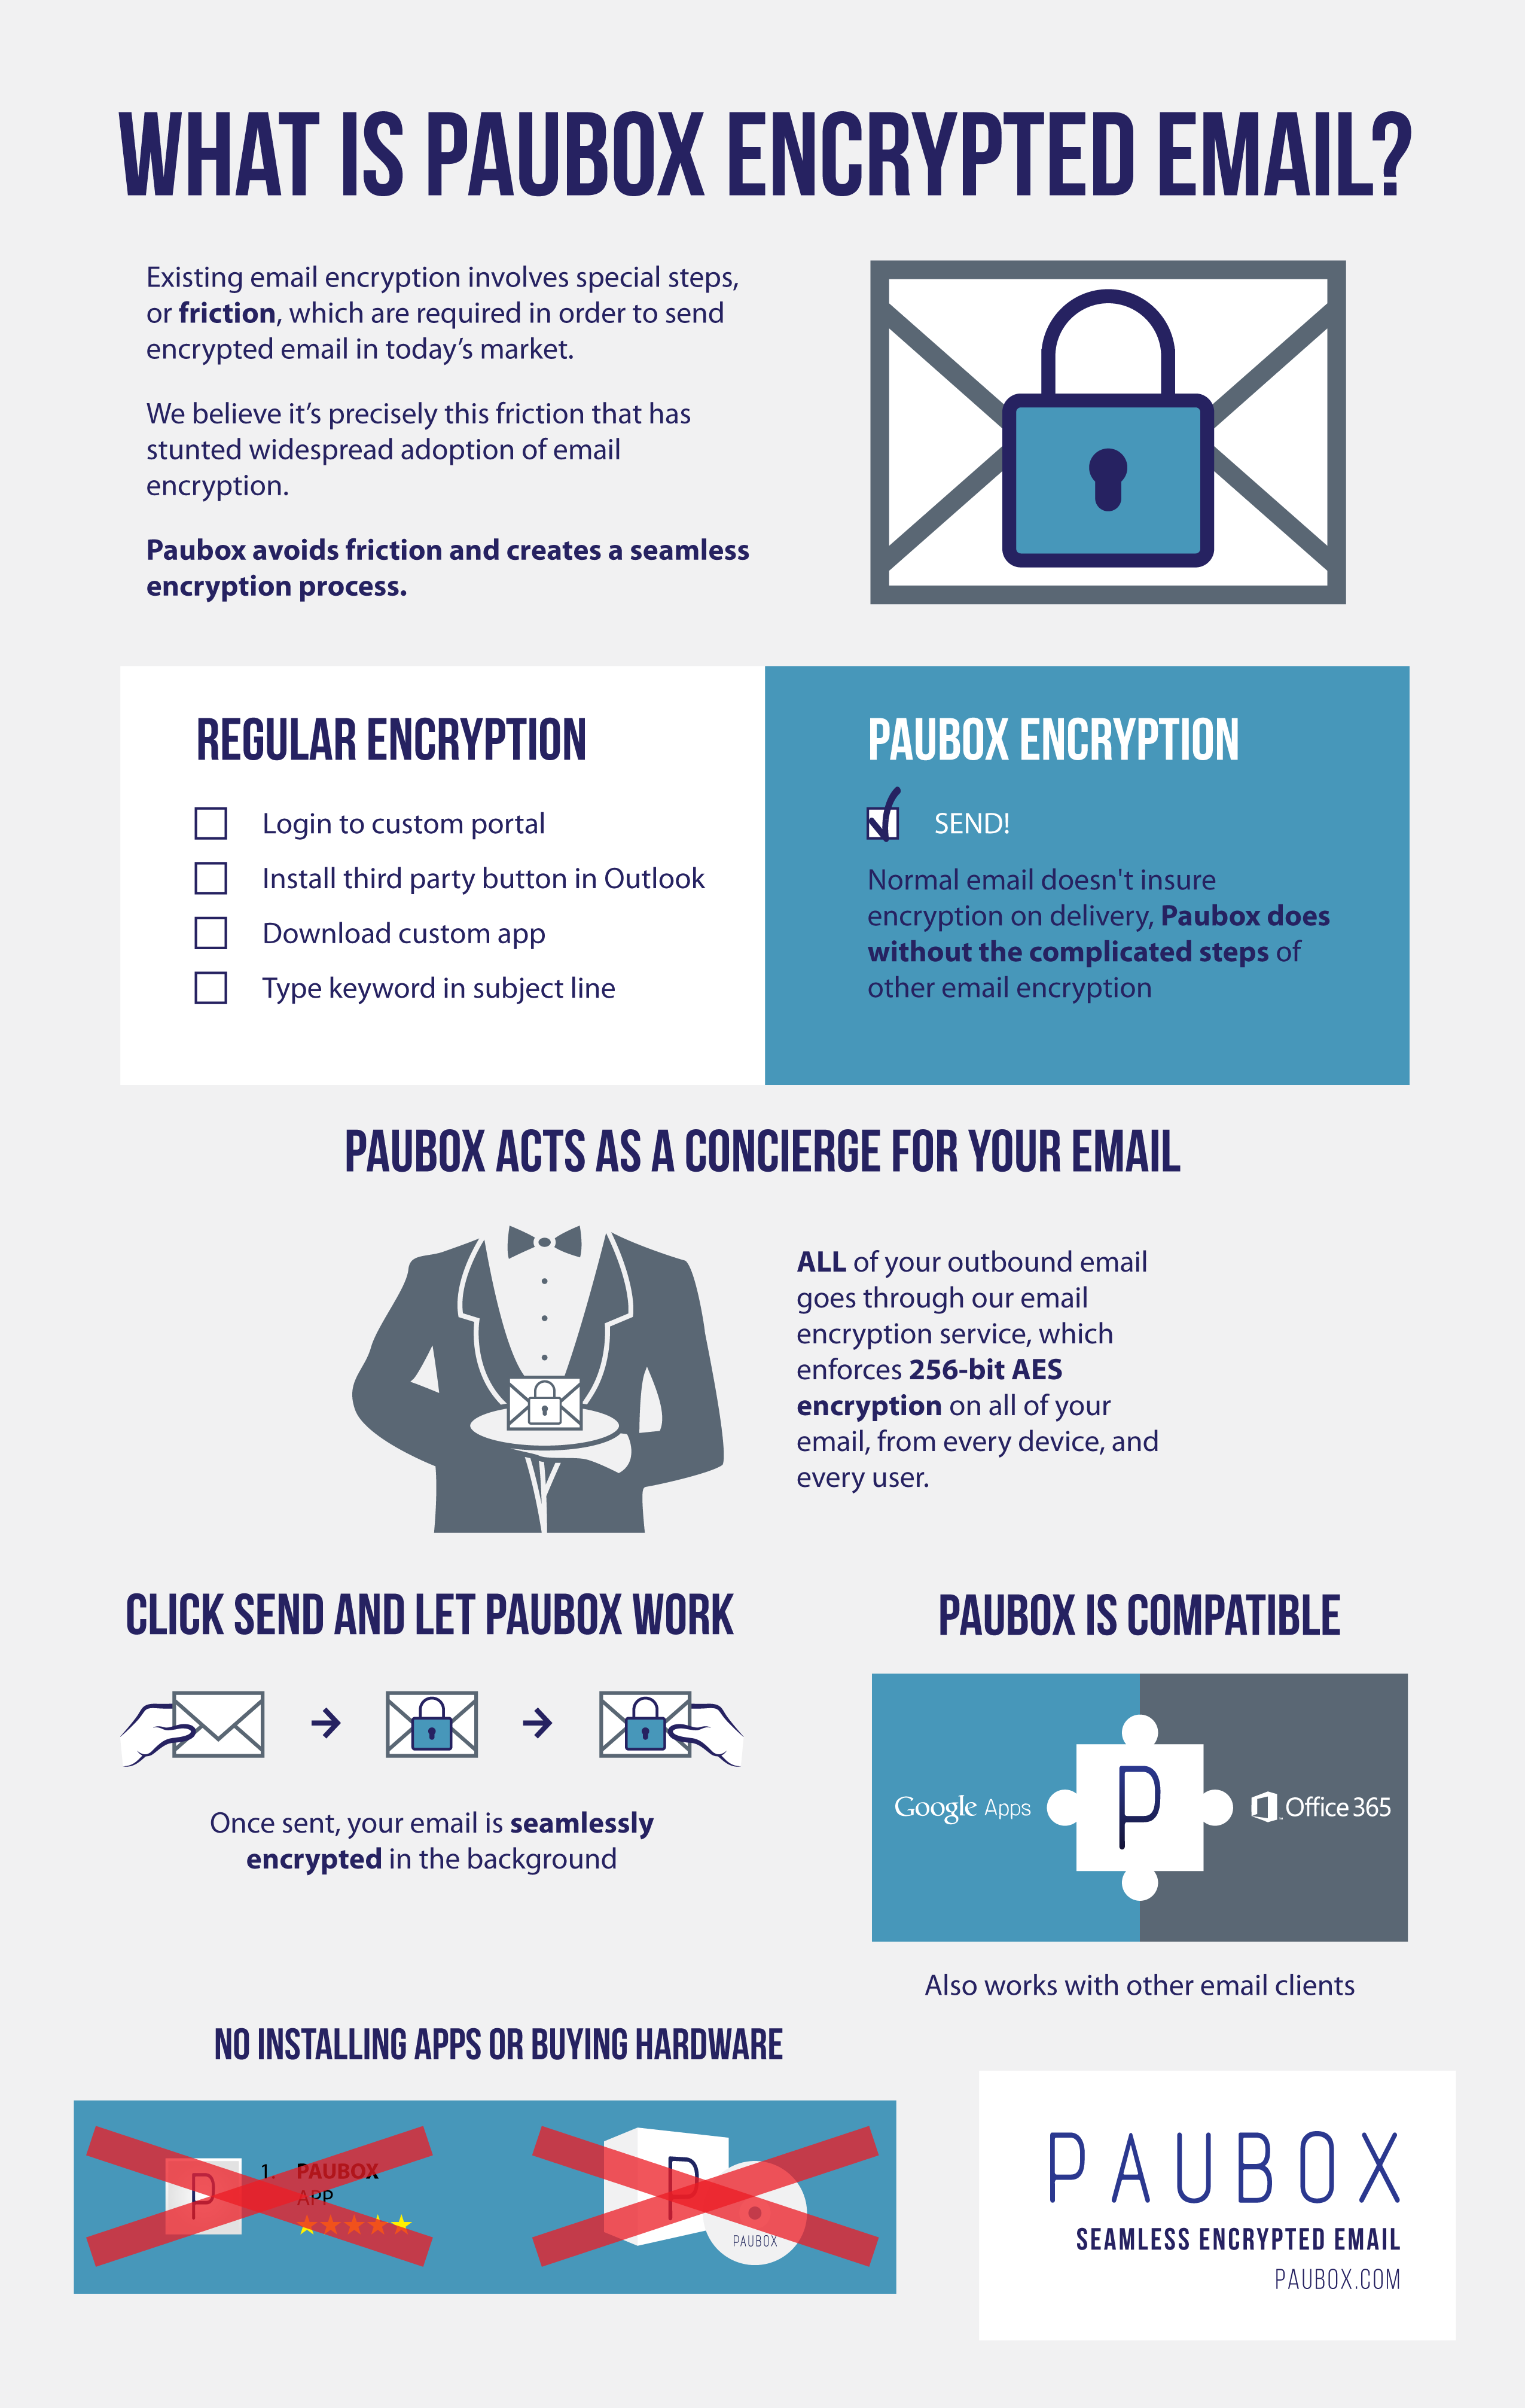 Paubox Encrypted Email Infographic